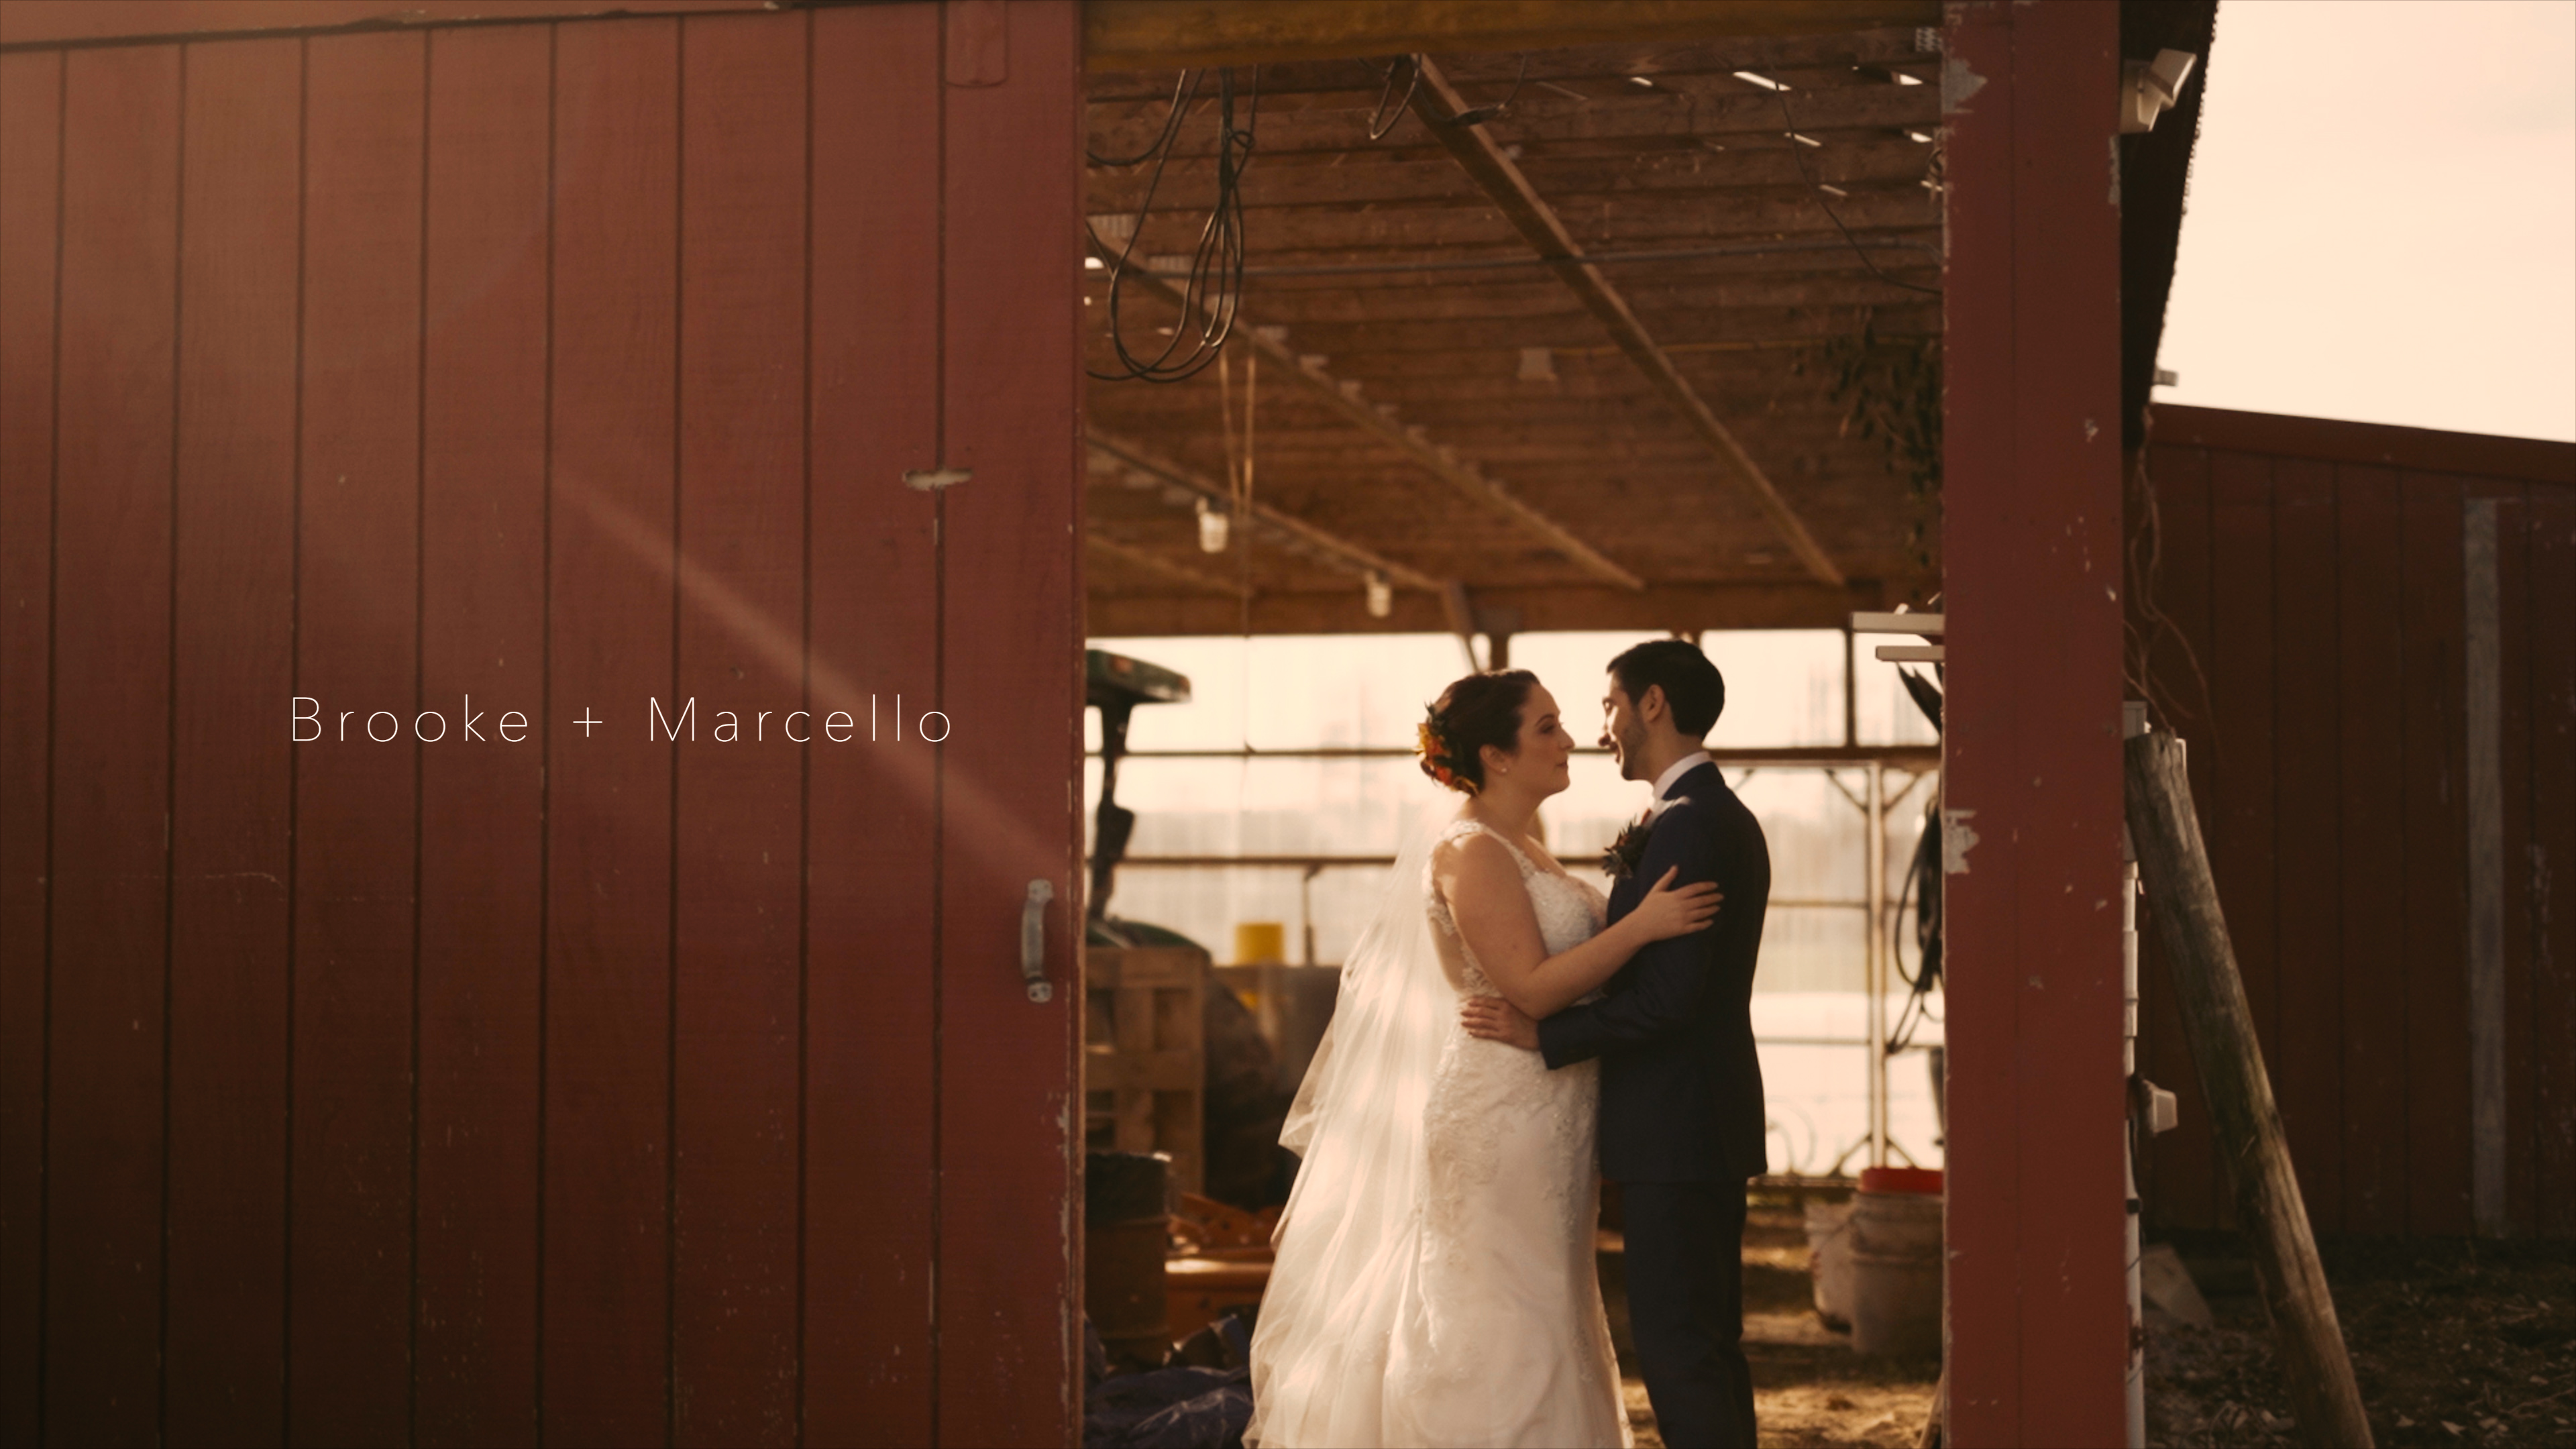 Brooke + Marcello | Groton, Massachusetts | The Barn at Gibbet Hill